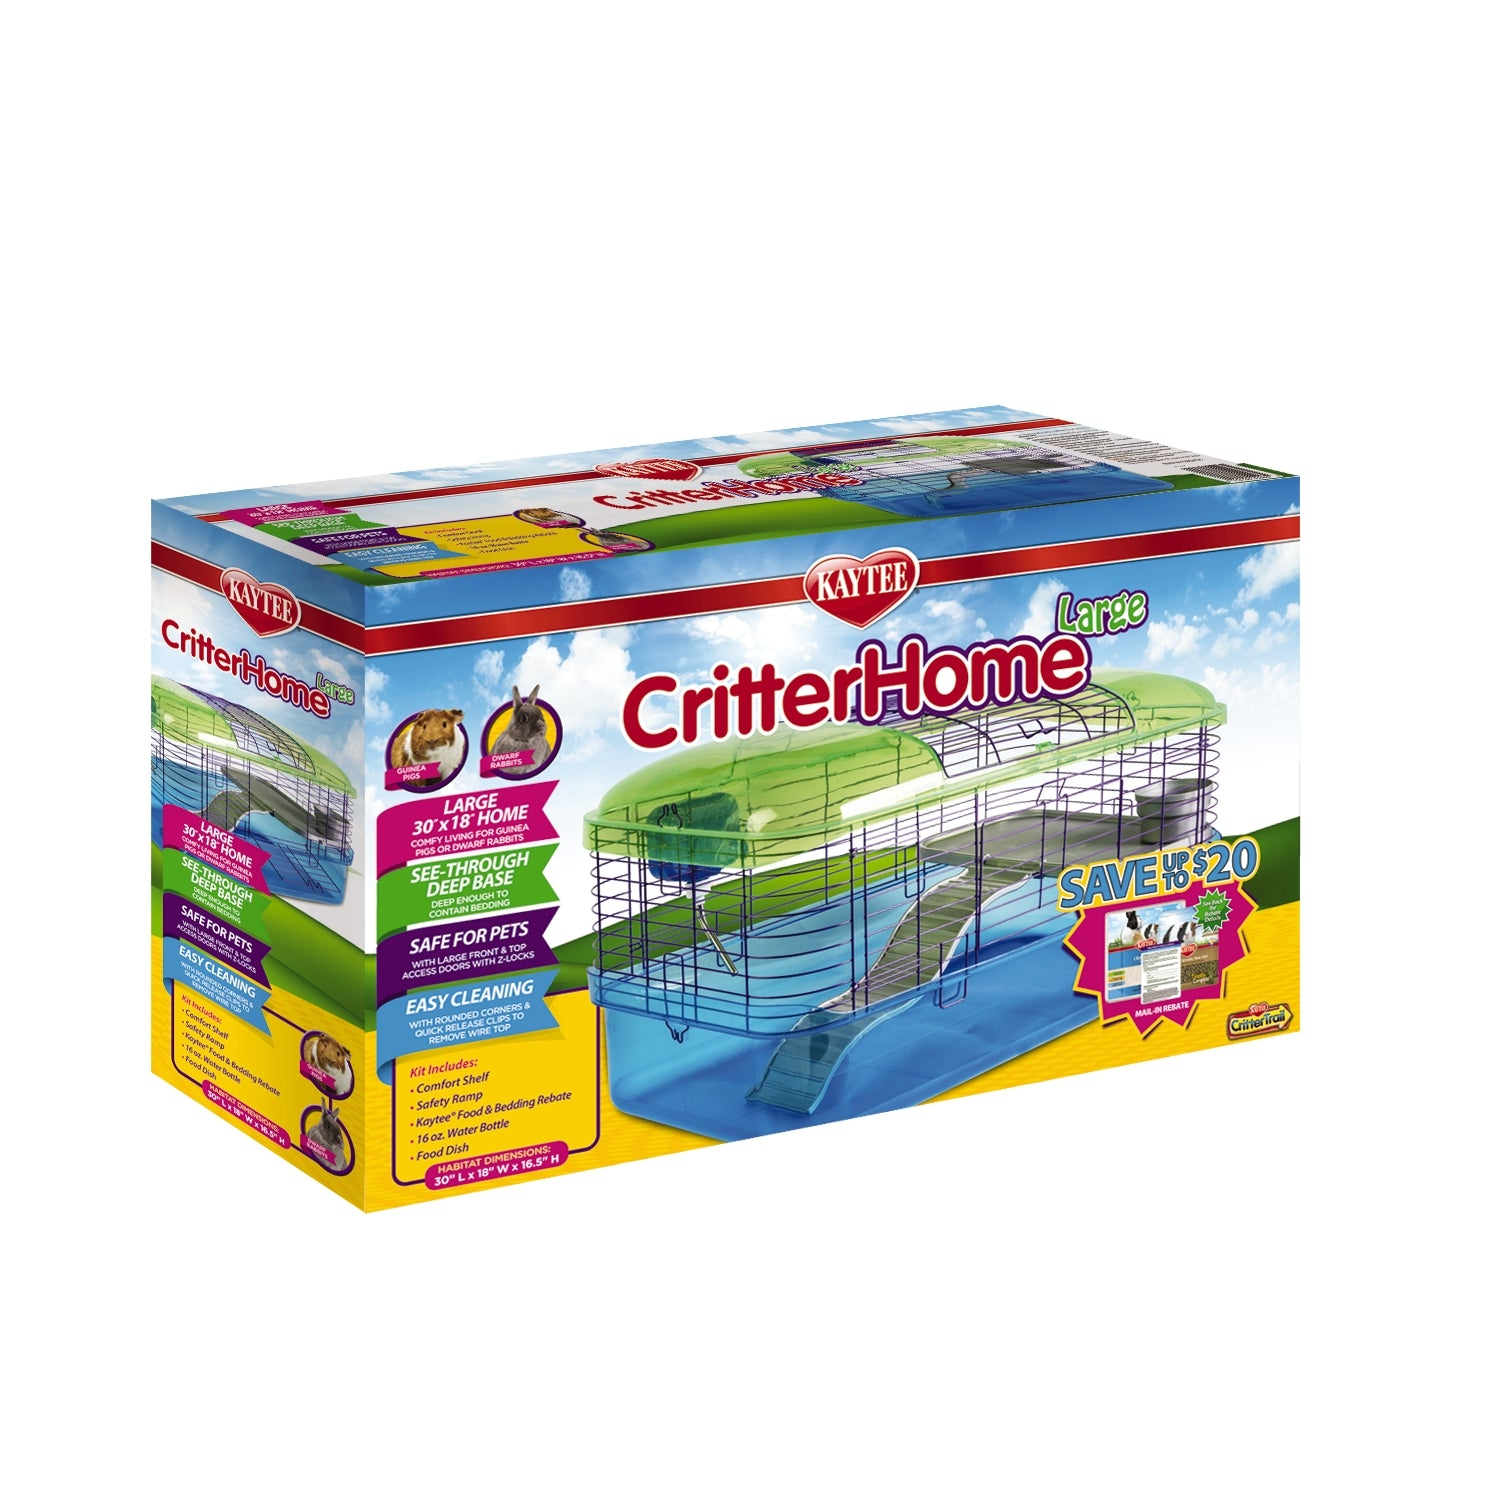 Kaytee CritterHome Small Pet Habitat - Large